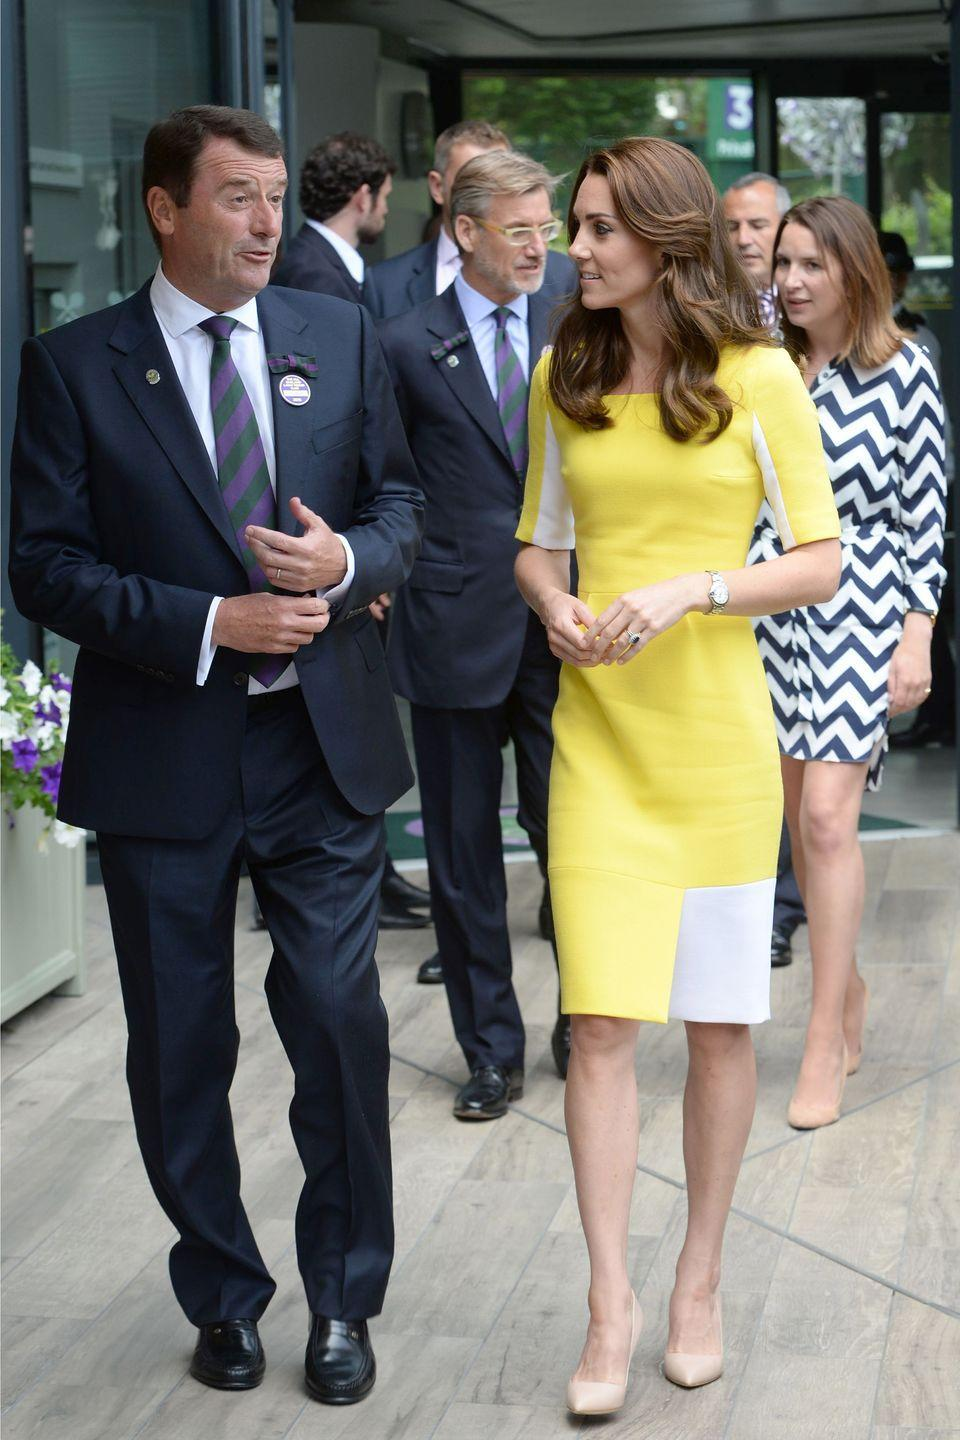 """<p>Taking a note from <a href=""""https://www.harpersbazaar.com/celebrity/latest/news/a16503/pippa-middleton-wimbledon-outfits/"""" rel=""""nofollow noopener"""" target=""""_blank"""" data-ylk=""""slk:her sister Pippa"""" class=""""link rapid-noclick-resp"""">her sister Pippa</a>, Kate Middleton dresses up for Wimbledon with a bright lemon-yellow and white dress by Roksanda.</p>"""